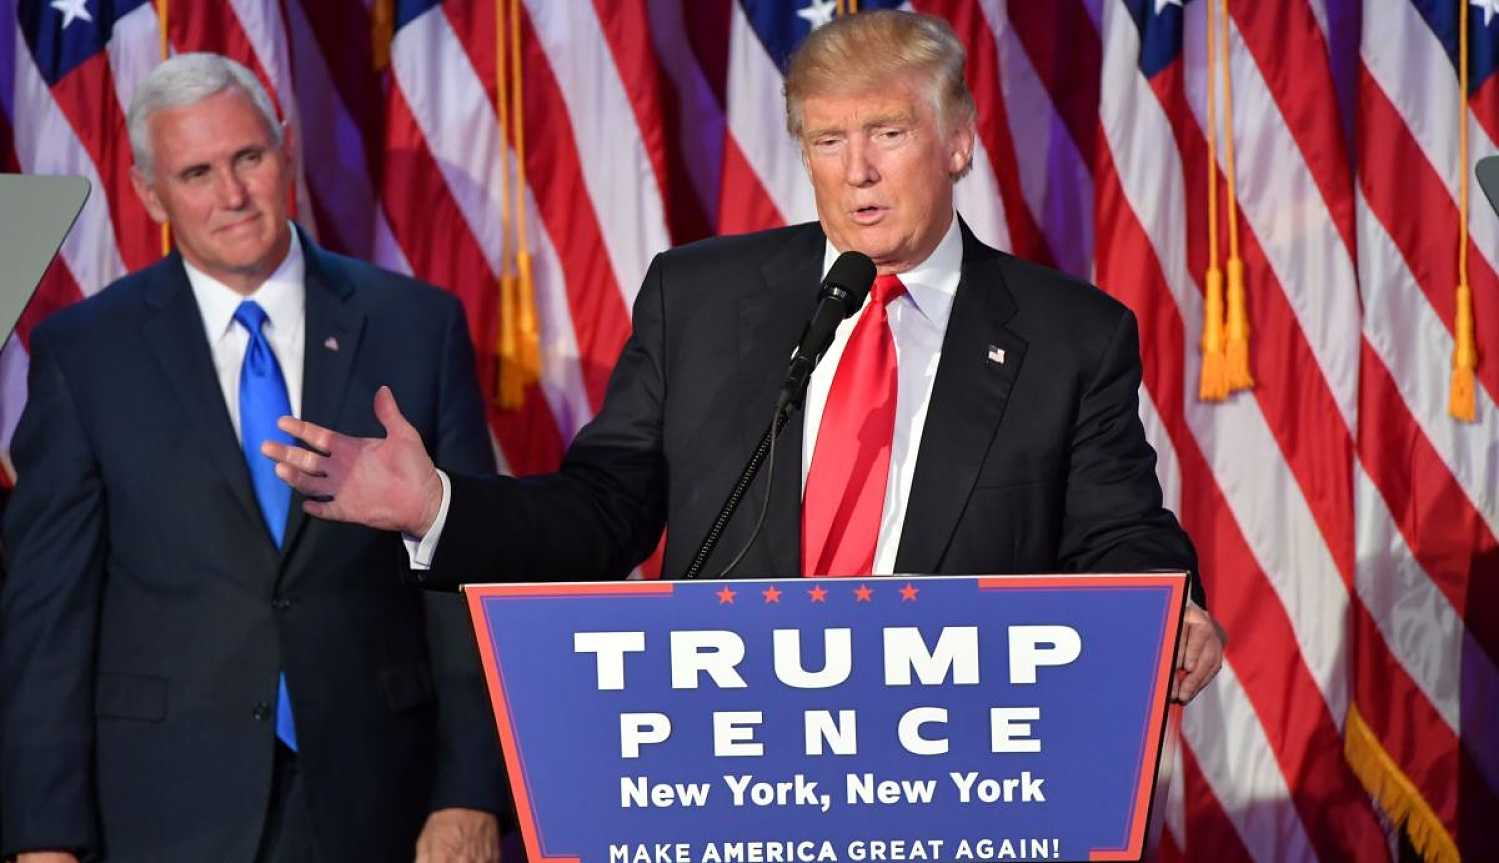 Trump delivers his victory speech early Wednesday morning. Photo courtesy of the Washington Post.